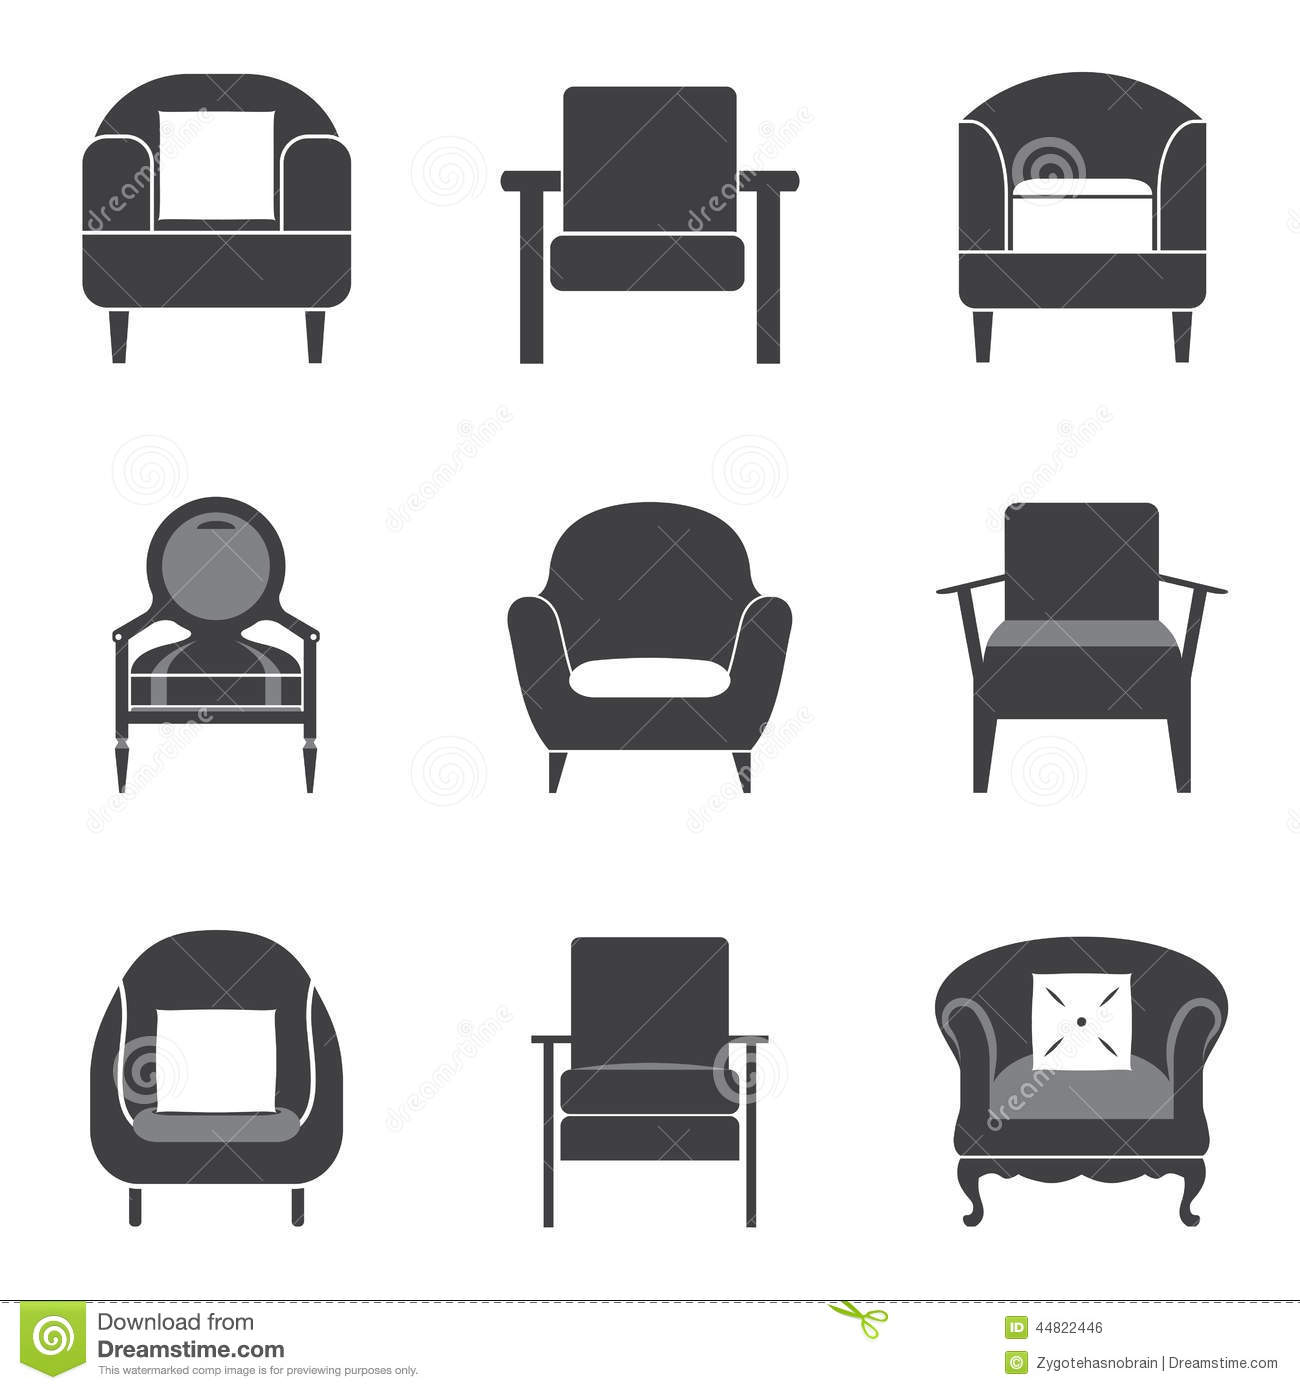 Sofa Vector Free Sofa Icon Set Stock Vector Illustration Of Collection 44822446